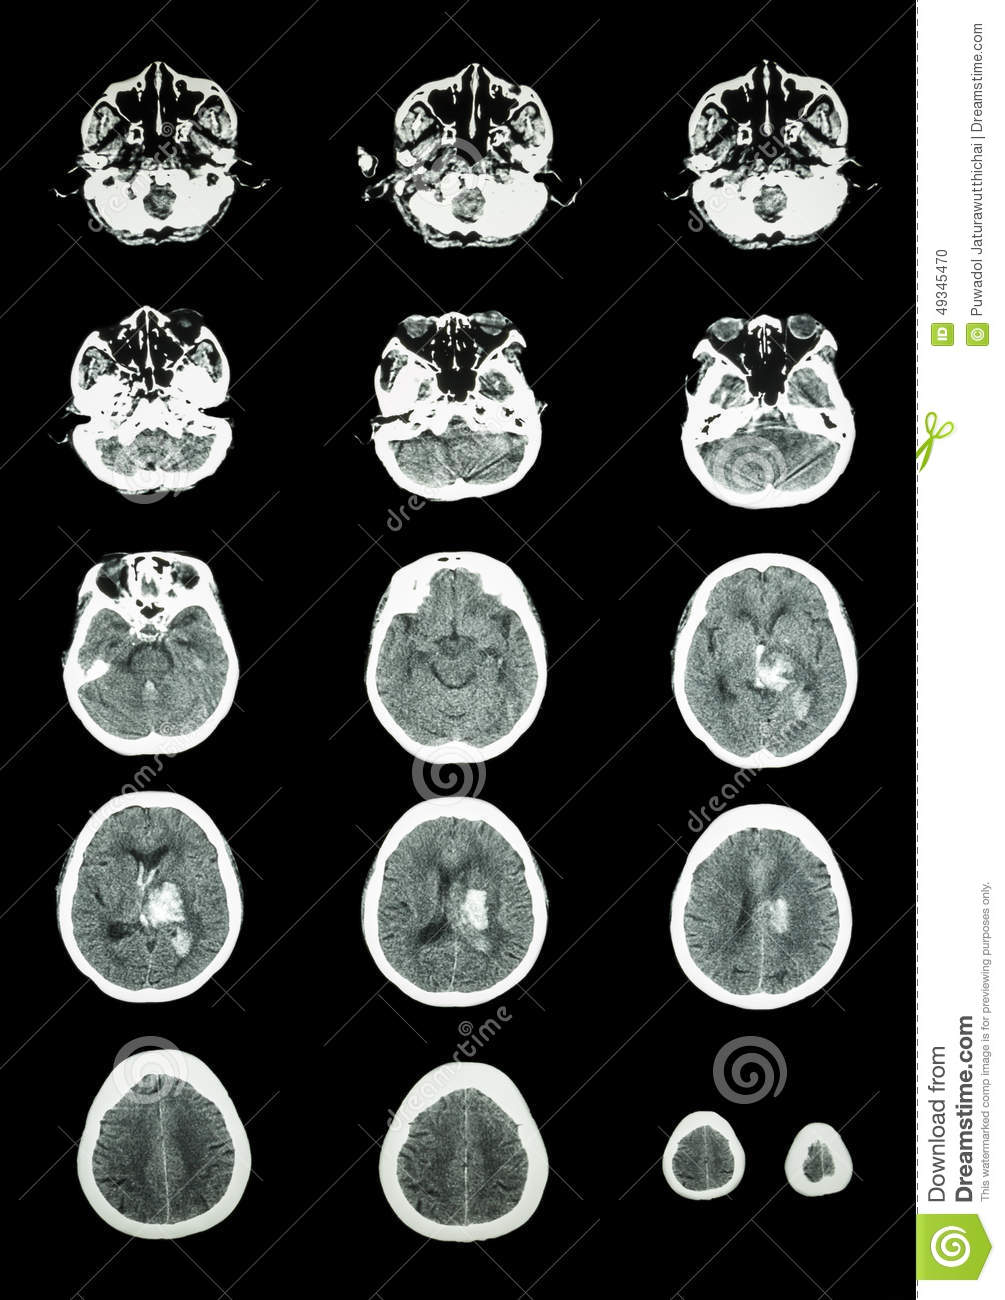 Hemorrhagic Stroke Clipart.